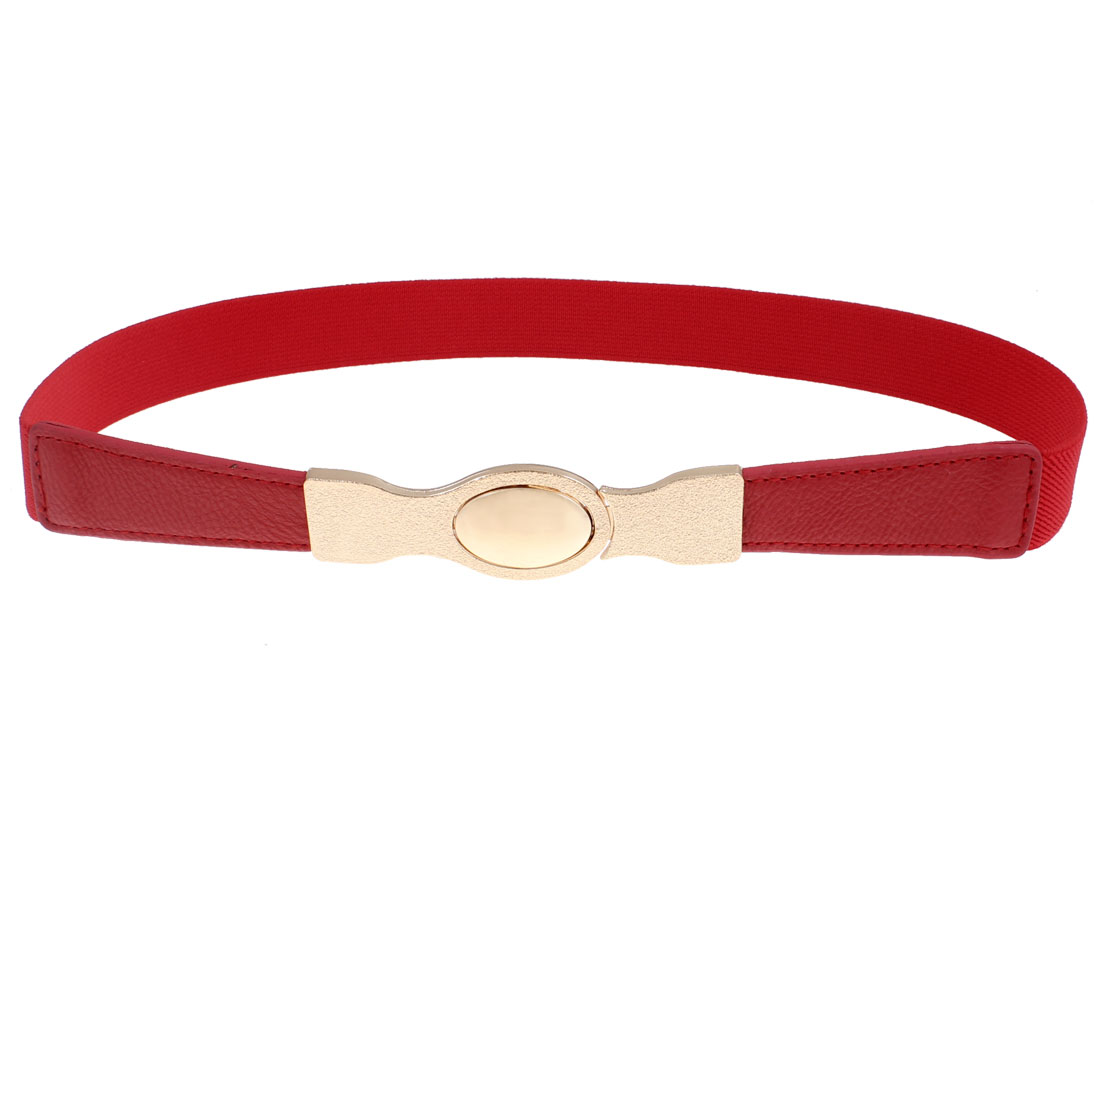 Women Oval Interlock Buckle Elastic Red Waistband Cinch Belt